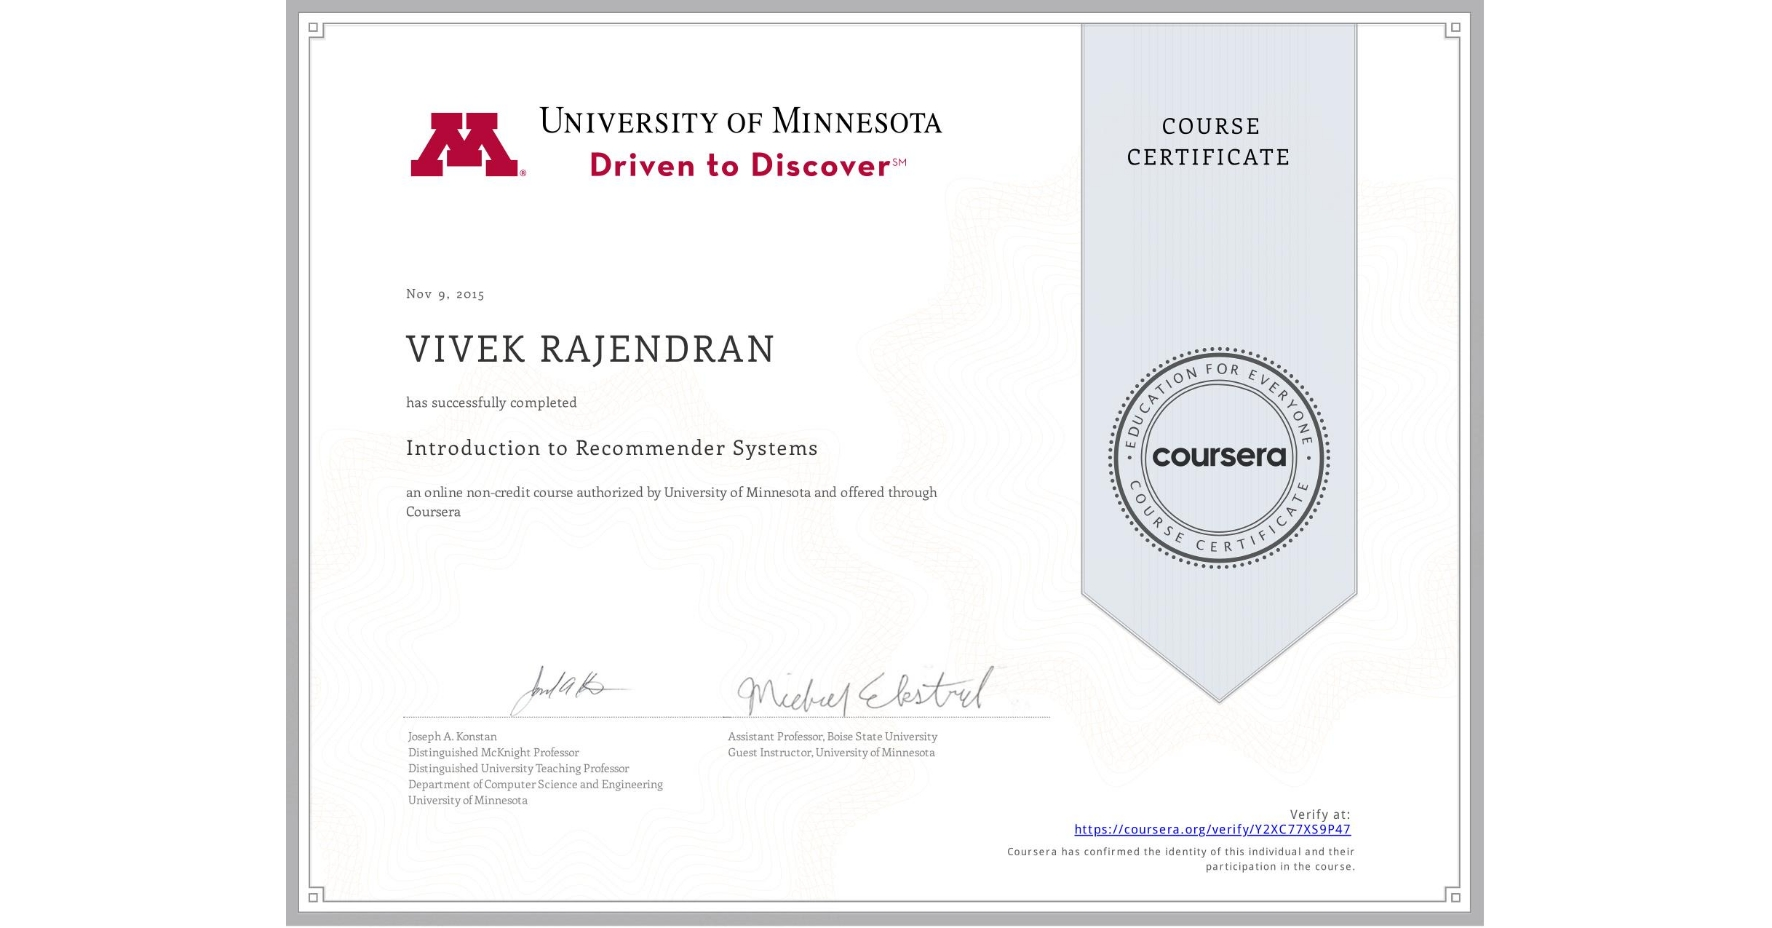 View certificate for VIVEK RAJENDRAN, Introduction to Recommender Systems, an online non-credit course authorized by University of Minnesota and offered through Coursera